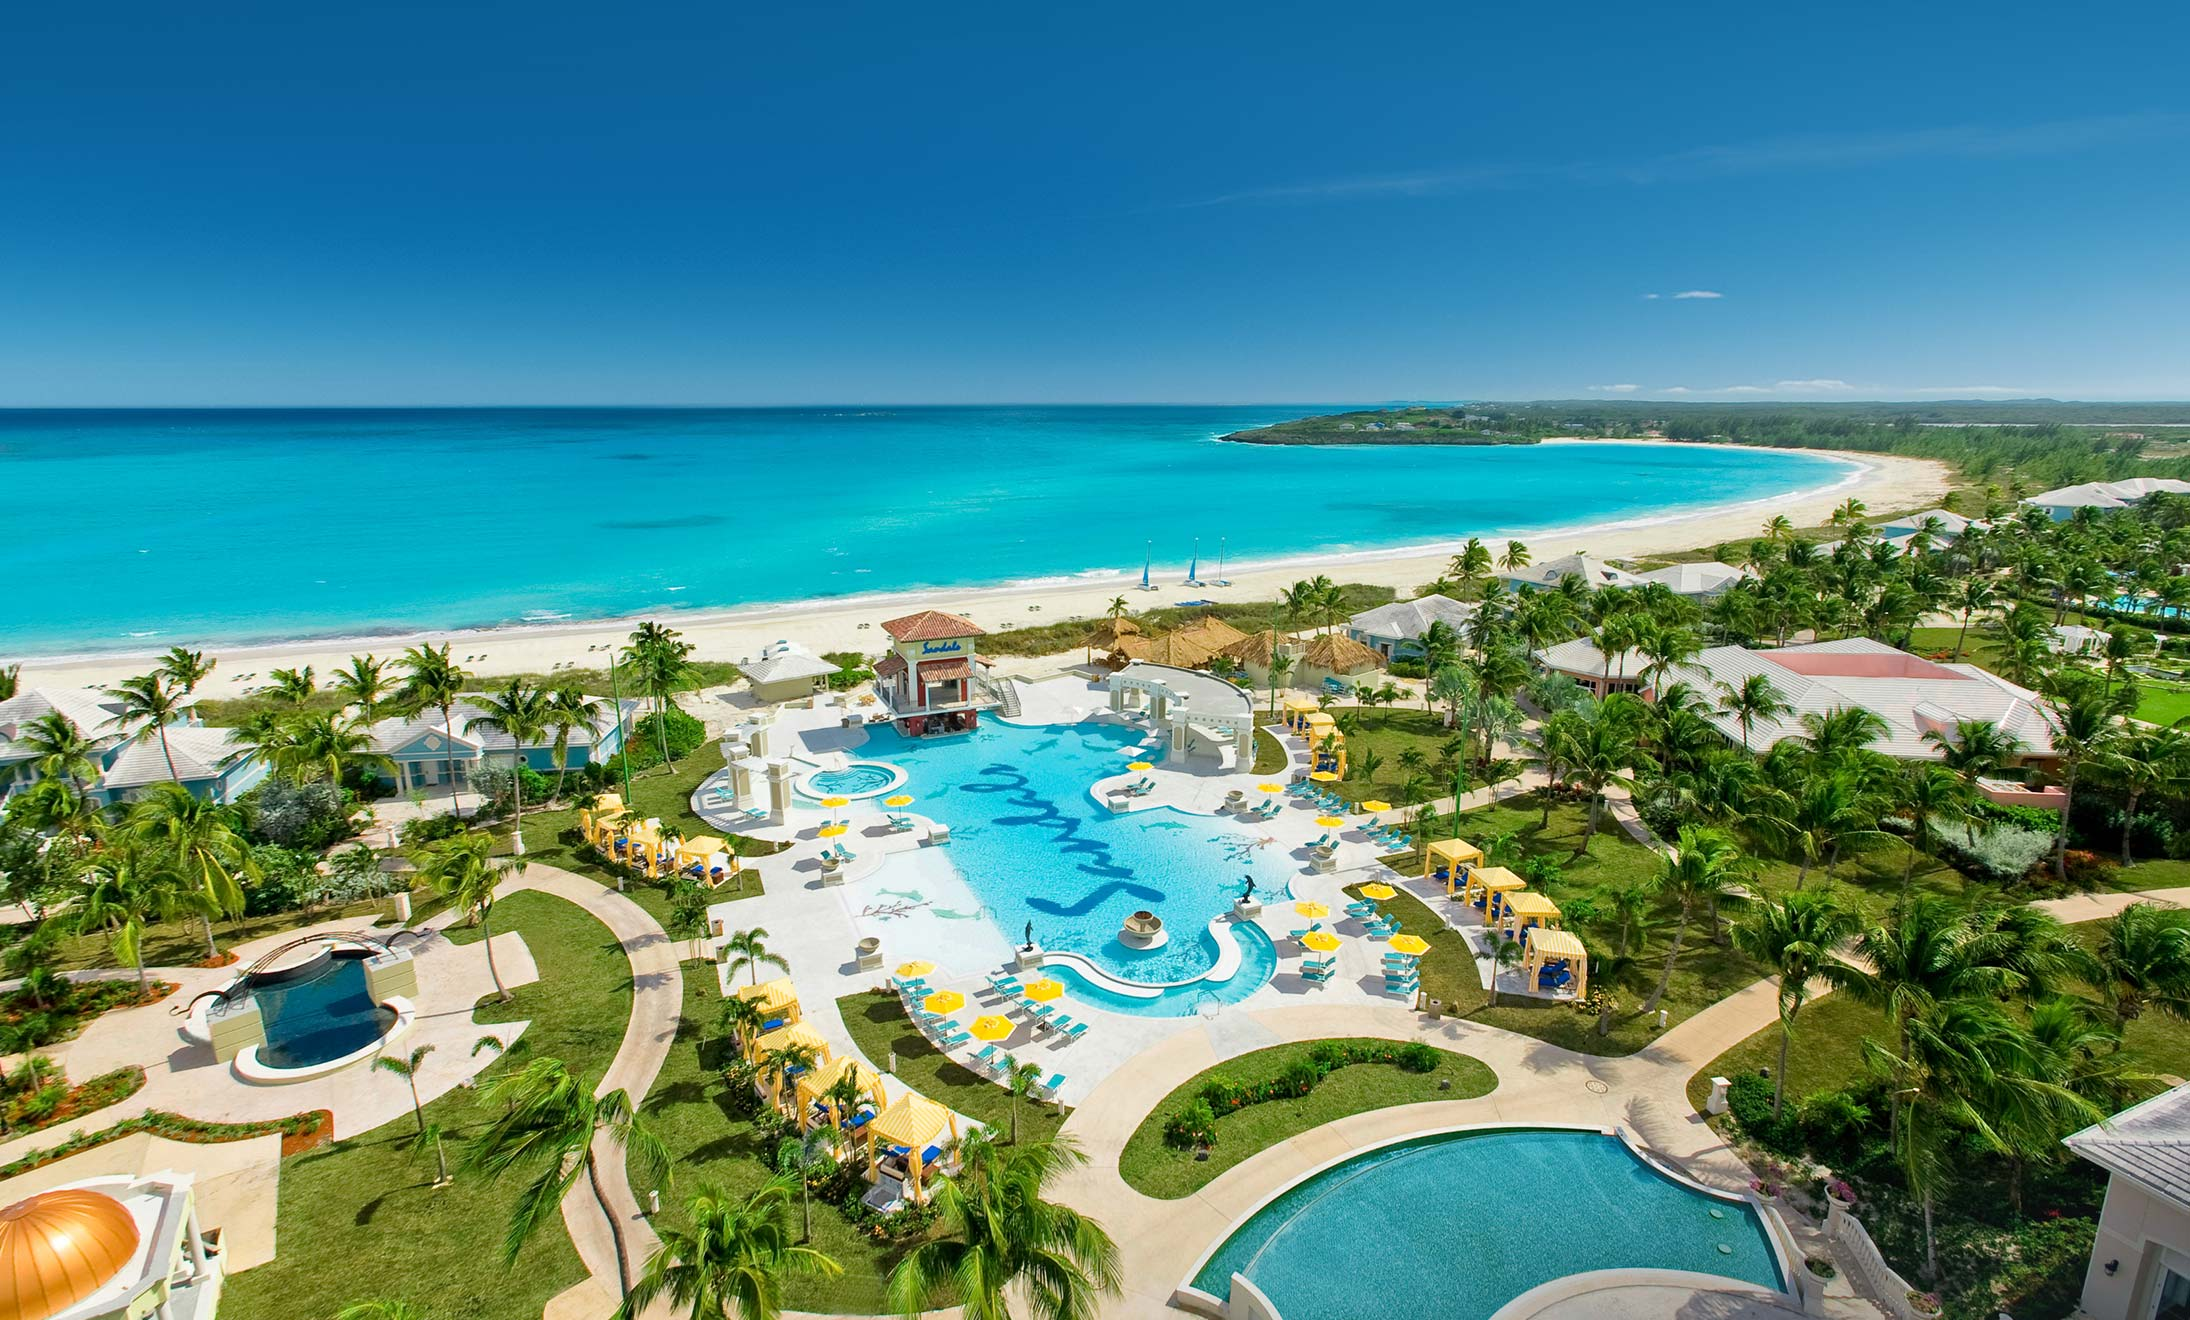 eb14a7c1a Sandals Resorts - Five Star All-Inclusive Vacations in the Caribbean